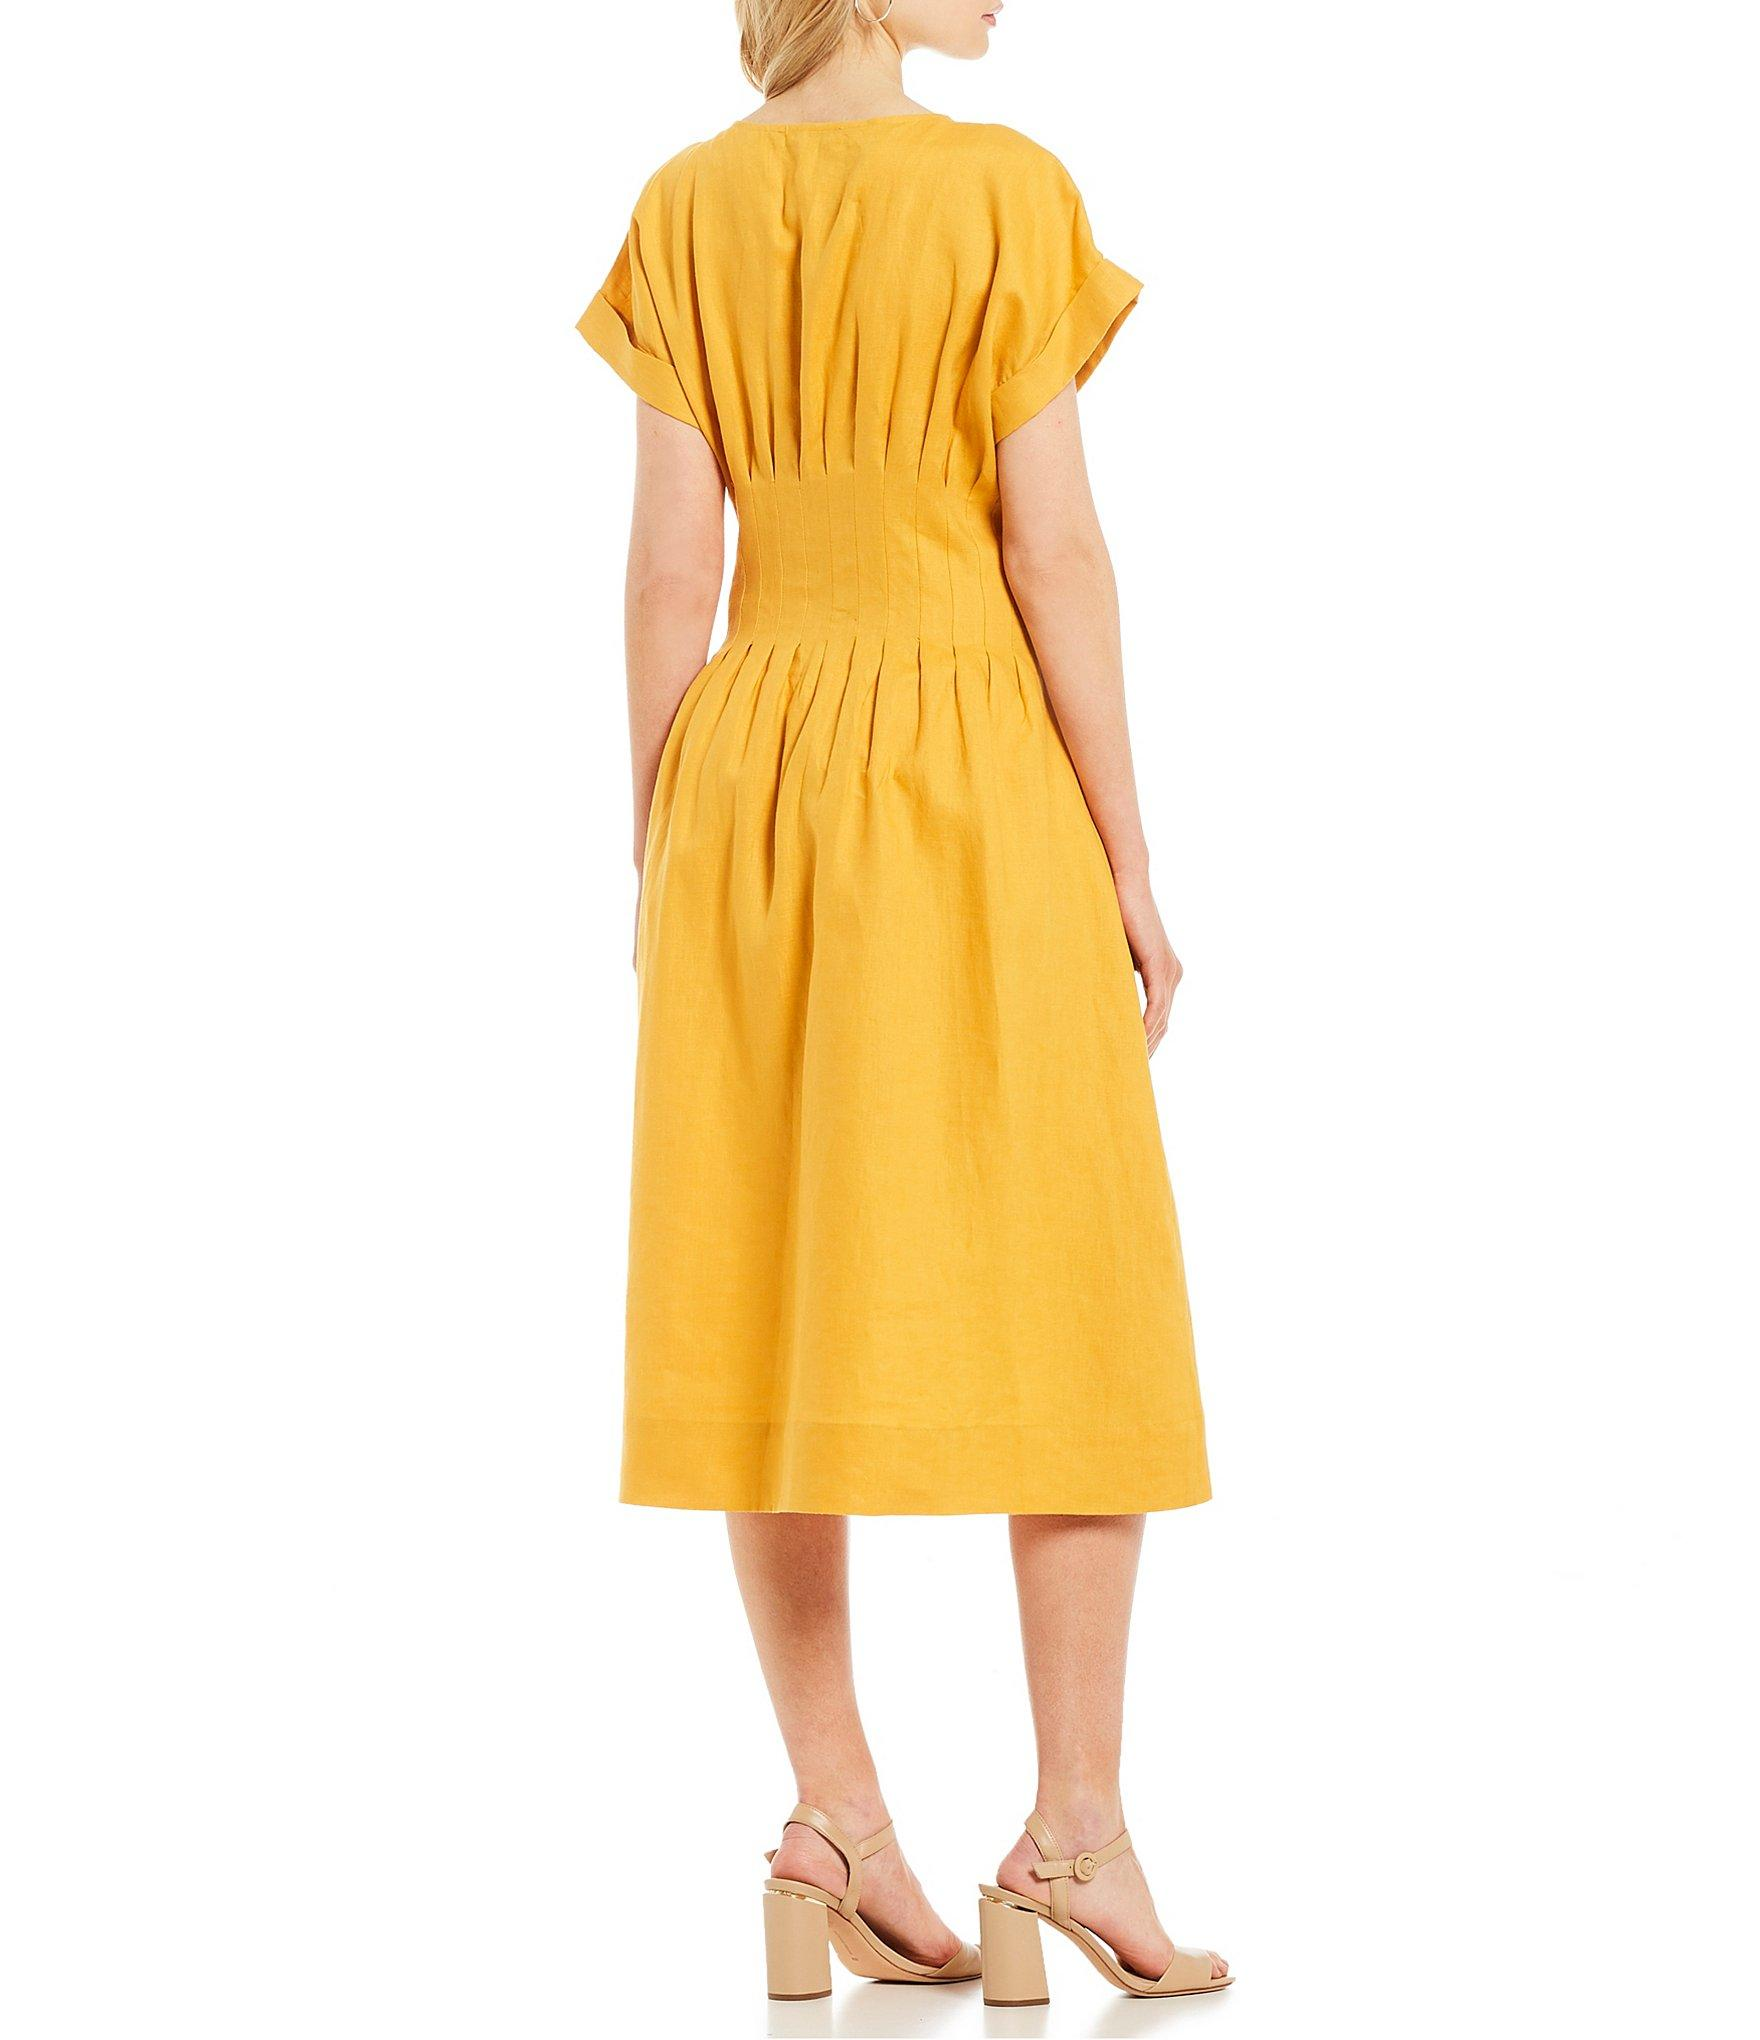 8bdd1e80988 Antonio Melani - Yellow Ellie Linen Short Sleeve V-neck Fit   Flare Midi  Dress. View fullscreen